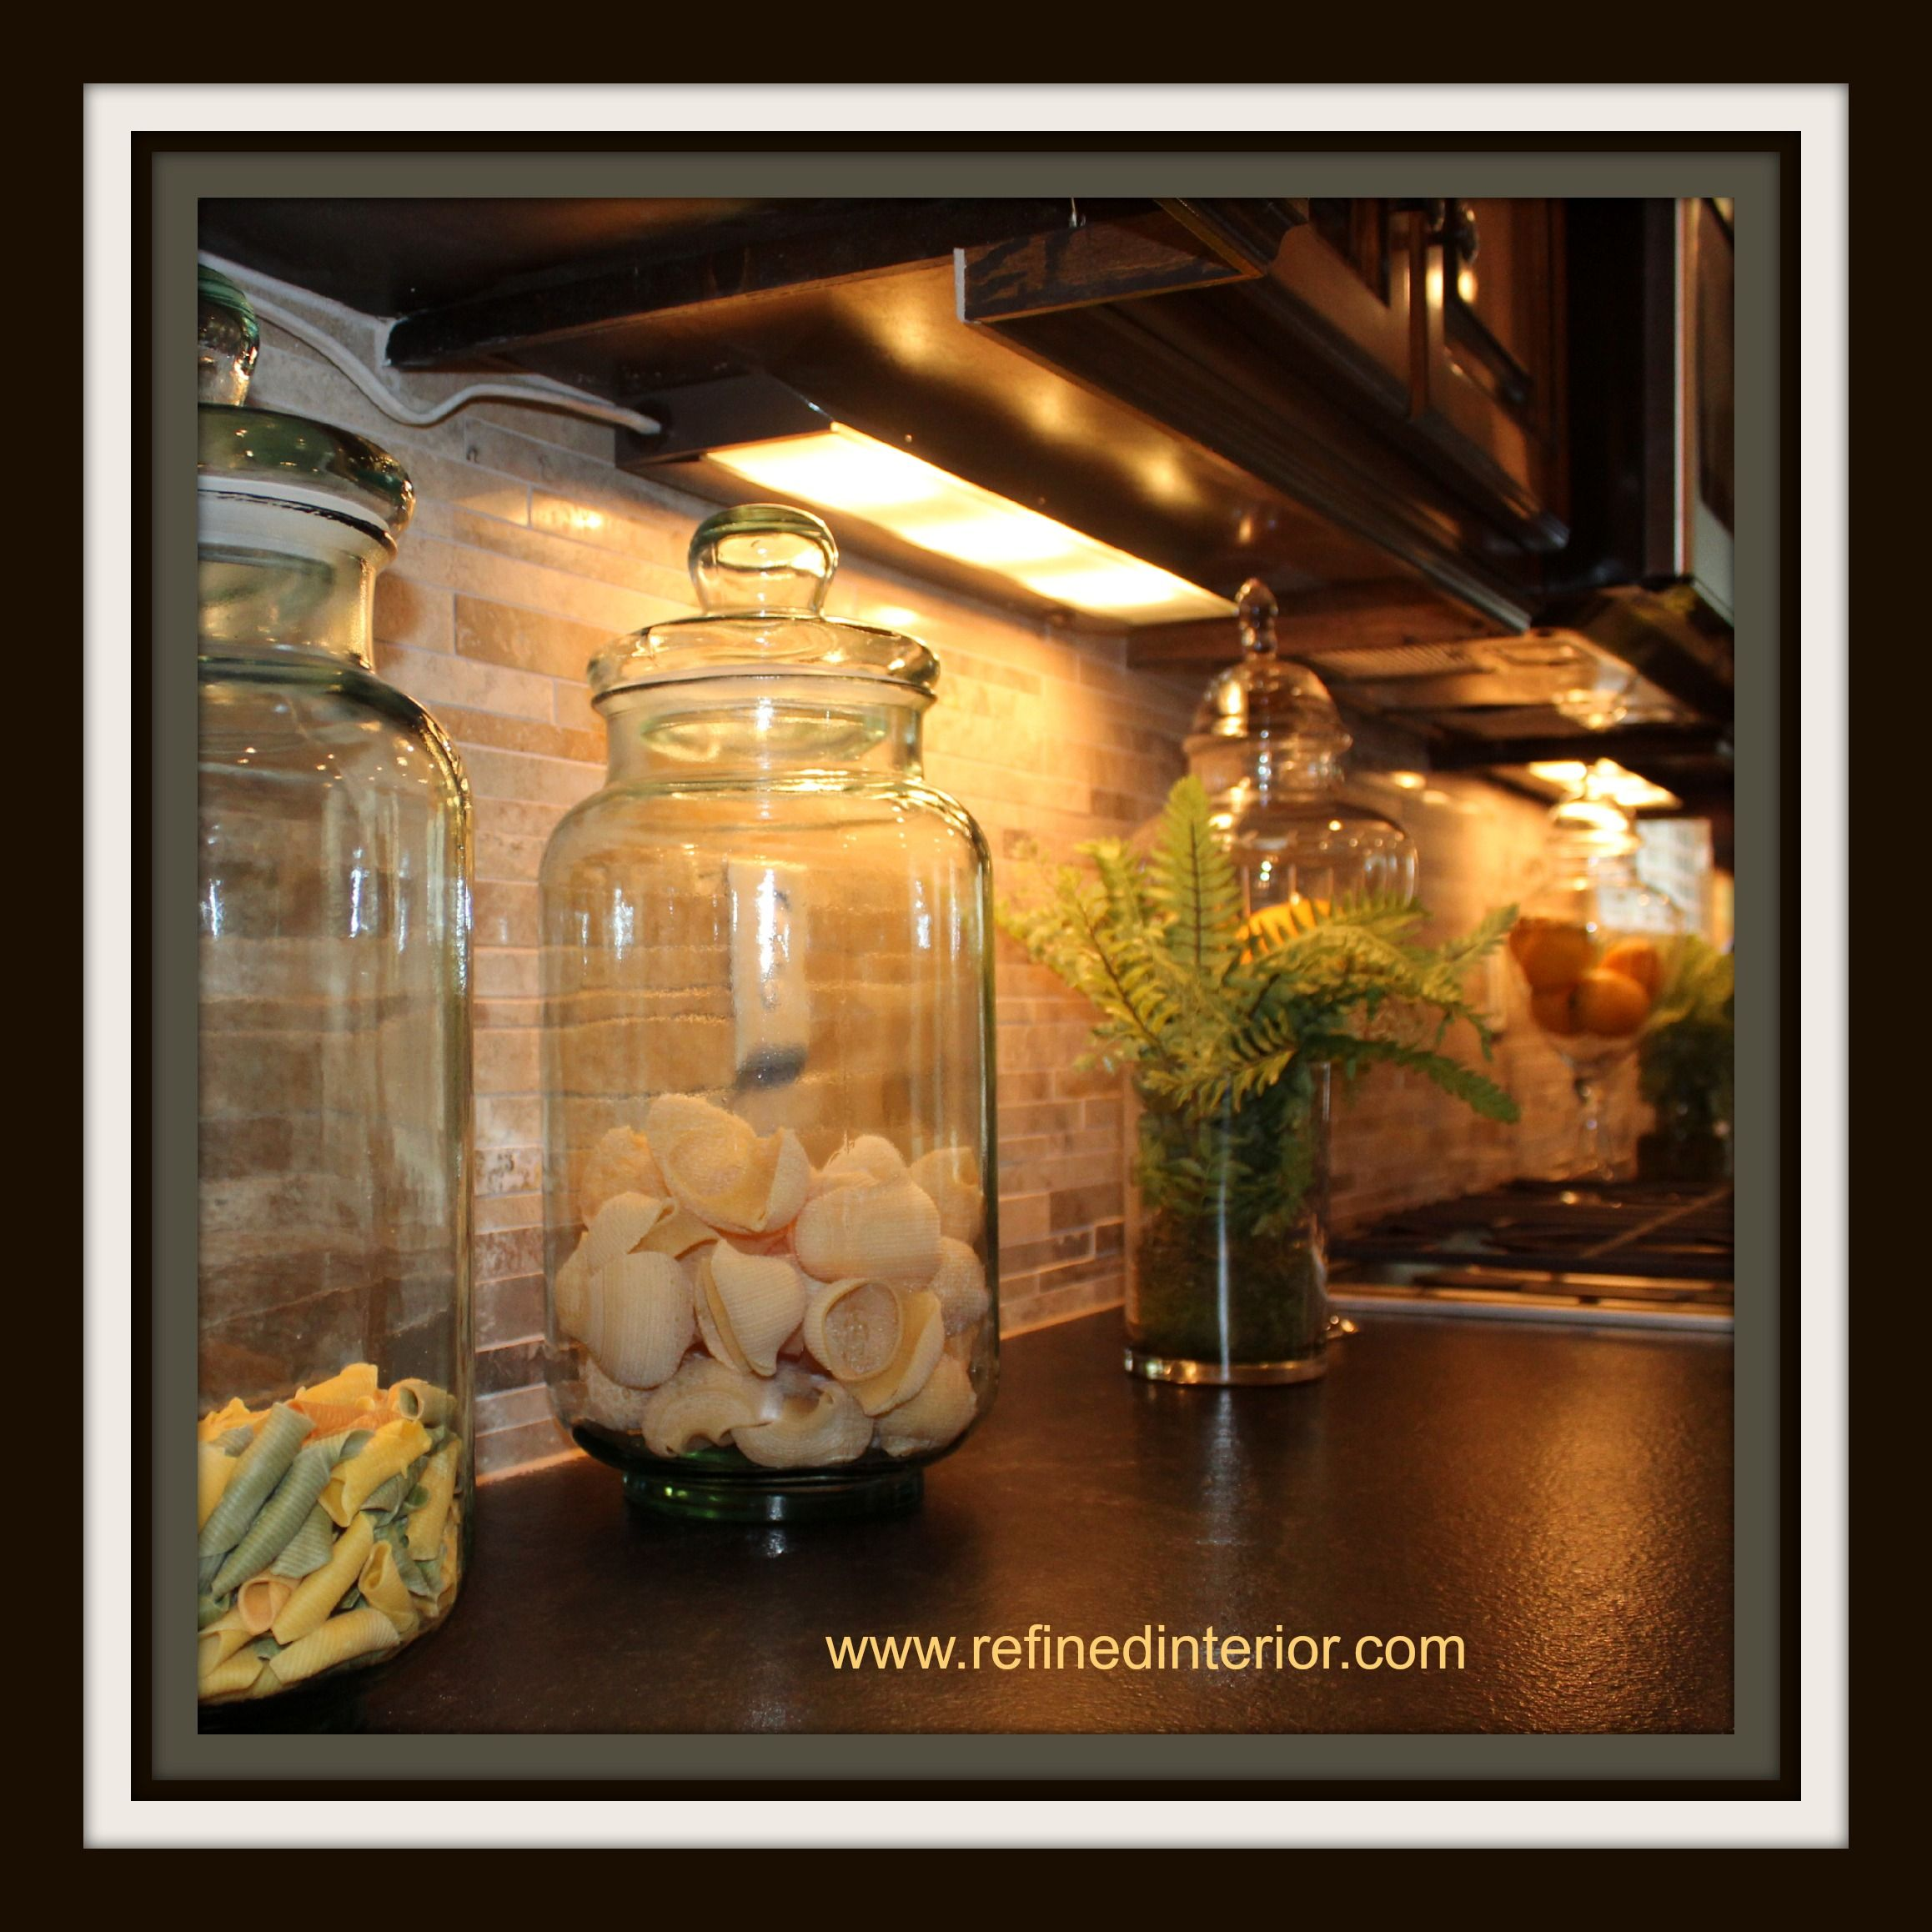 Staging Kitchen Counters: Vacant Home Staging, Accessorizing Kitchen Countertops